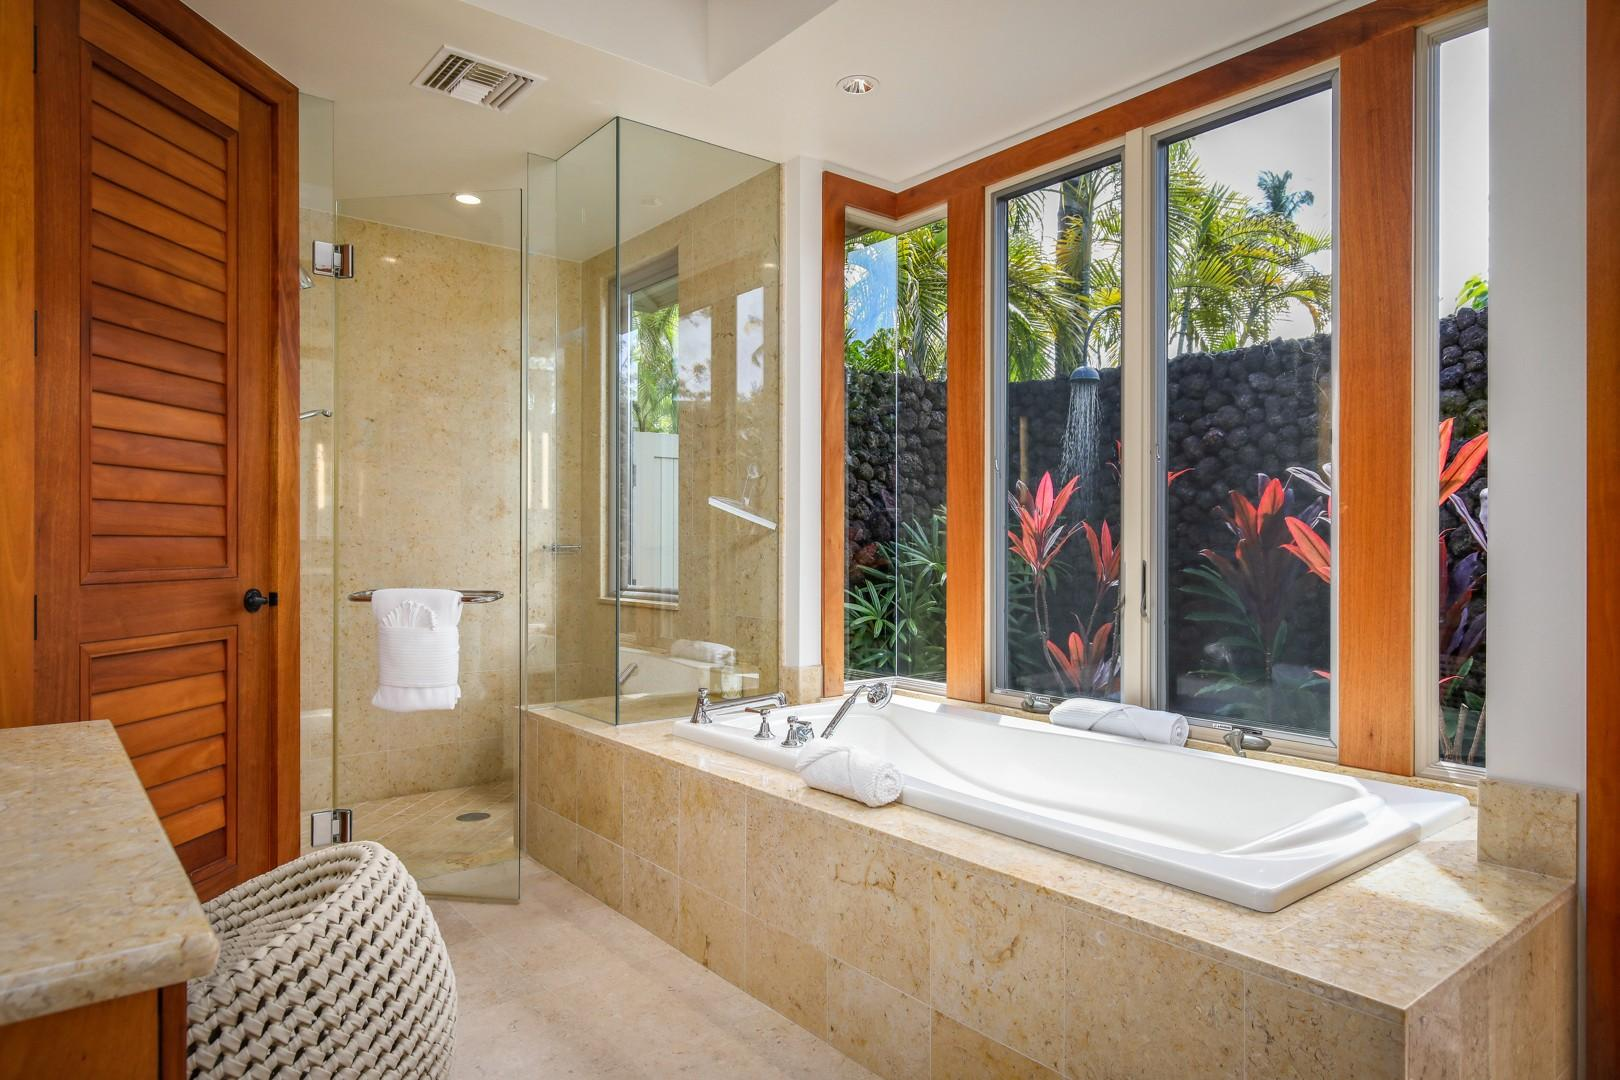 Soaking tub and walk-in shower.